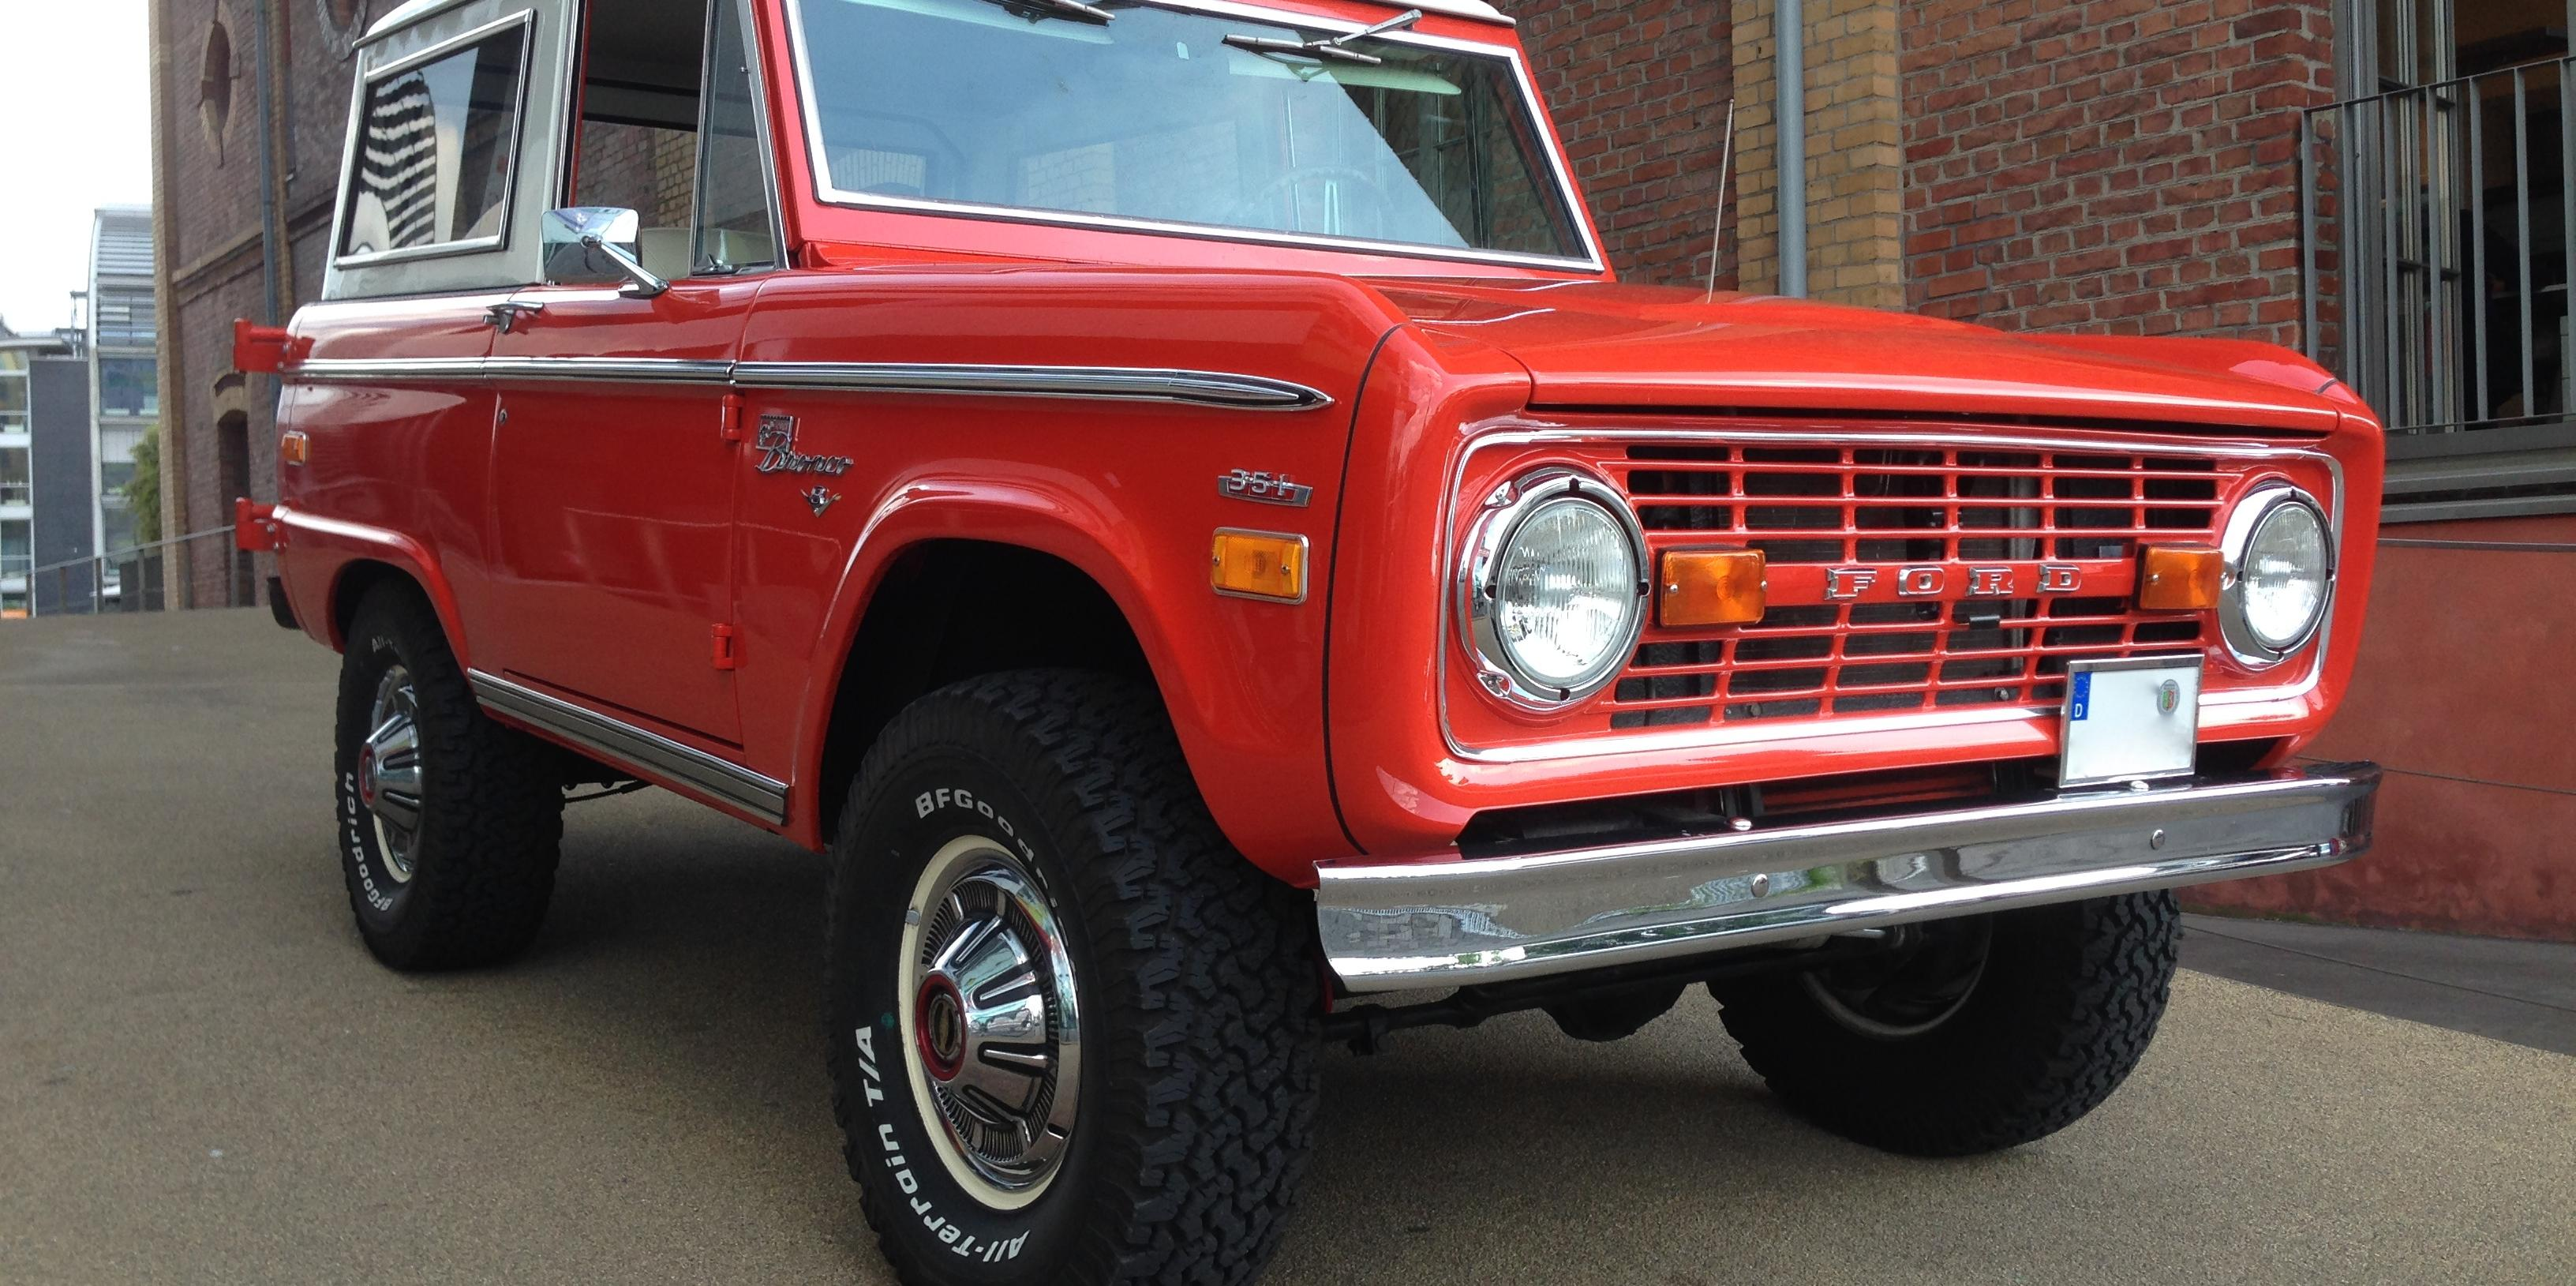 captain-gaskrank 1971 Ford Bronco